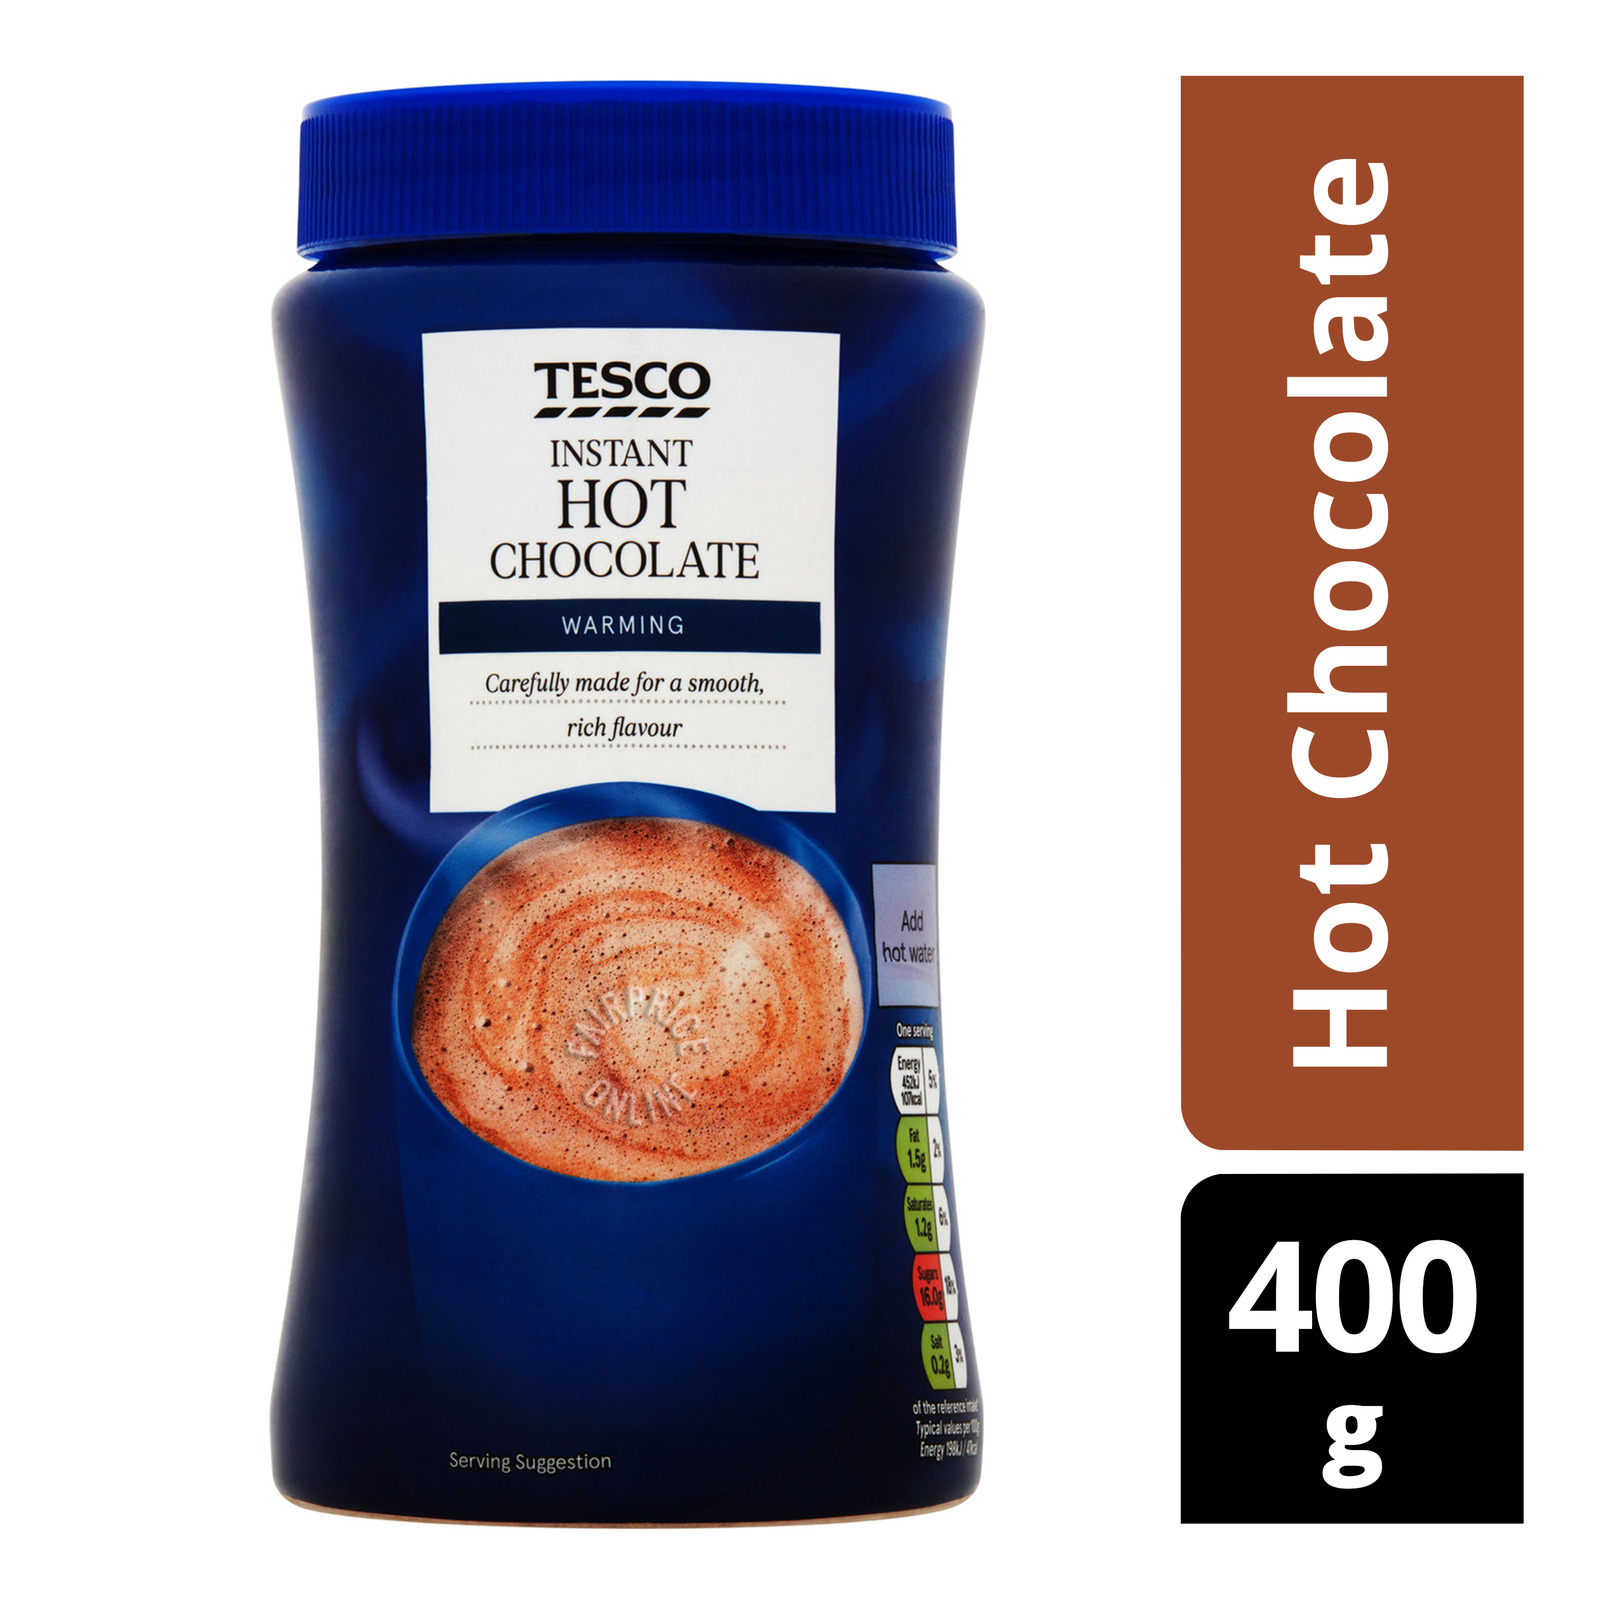 Tesco Instant Hot Chocolate